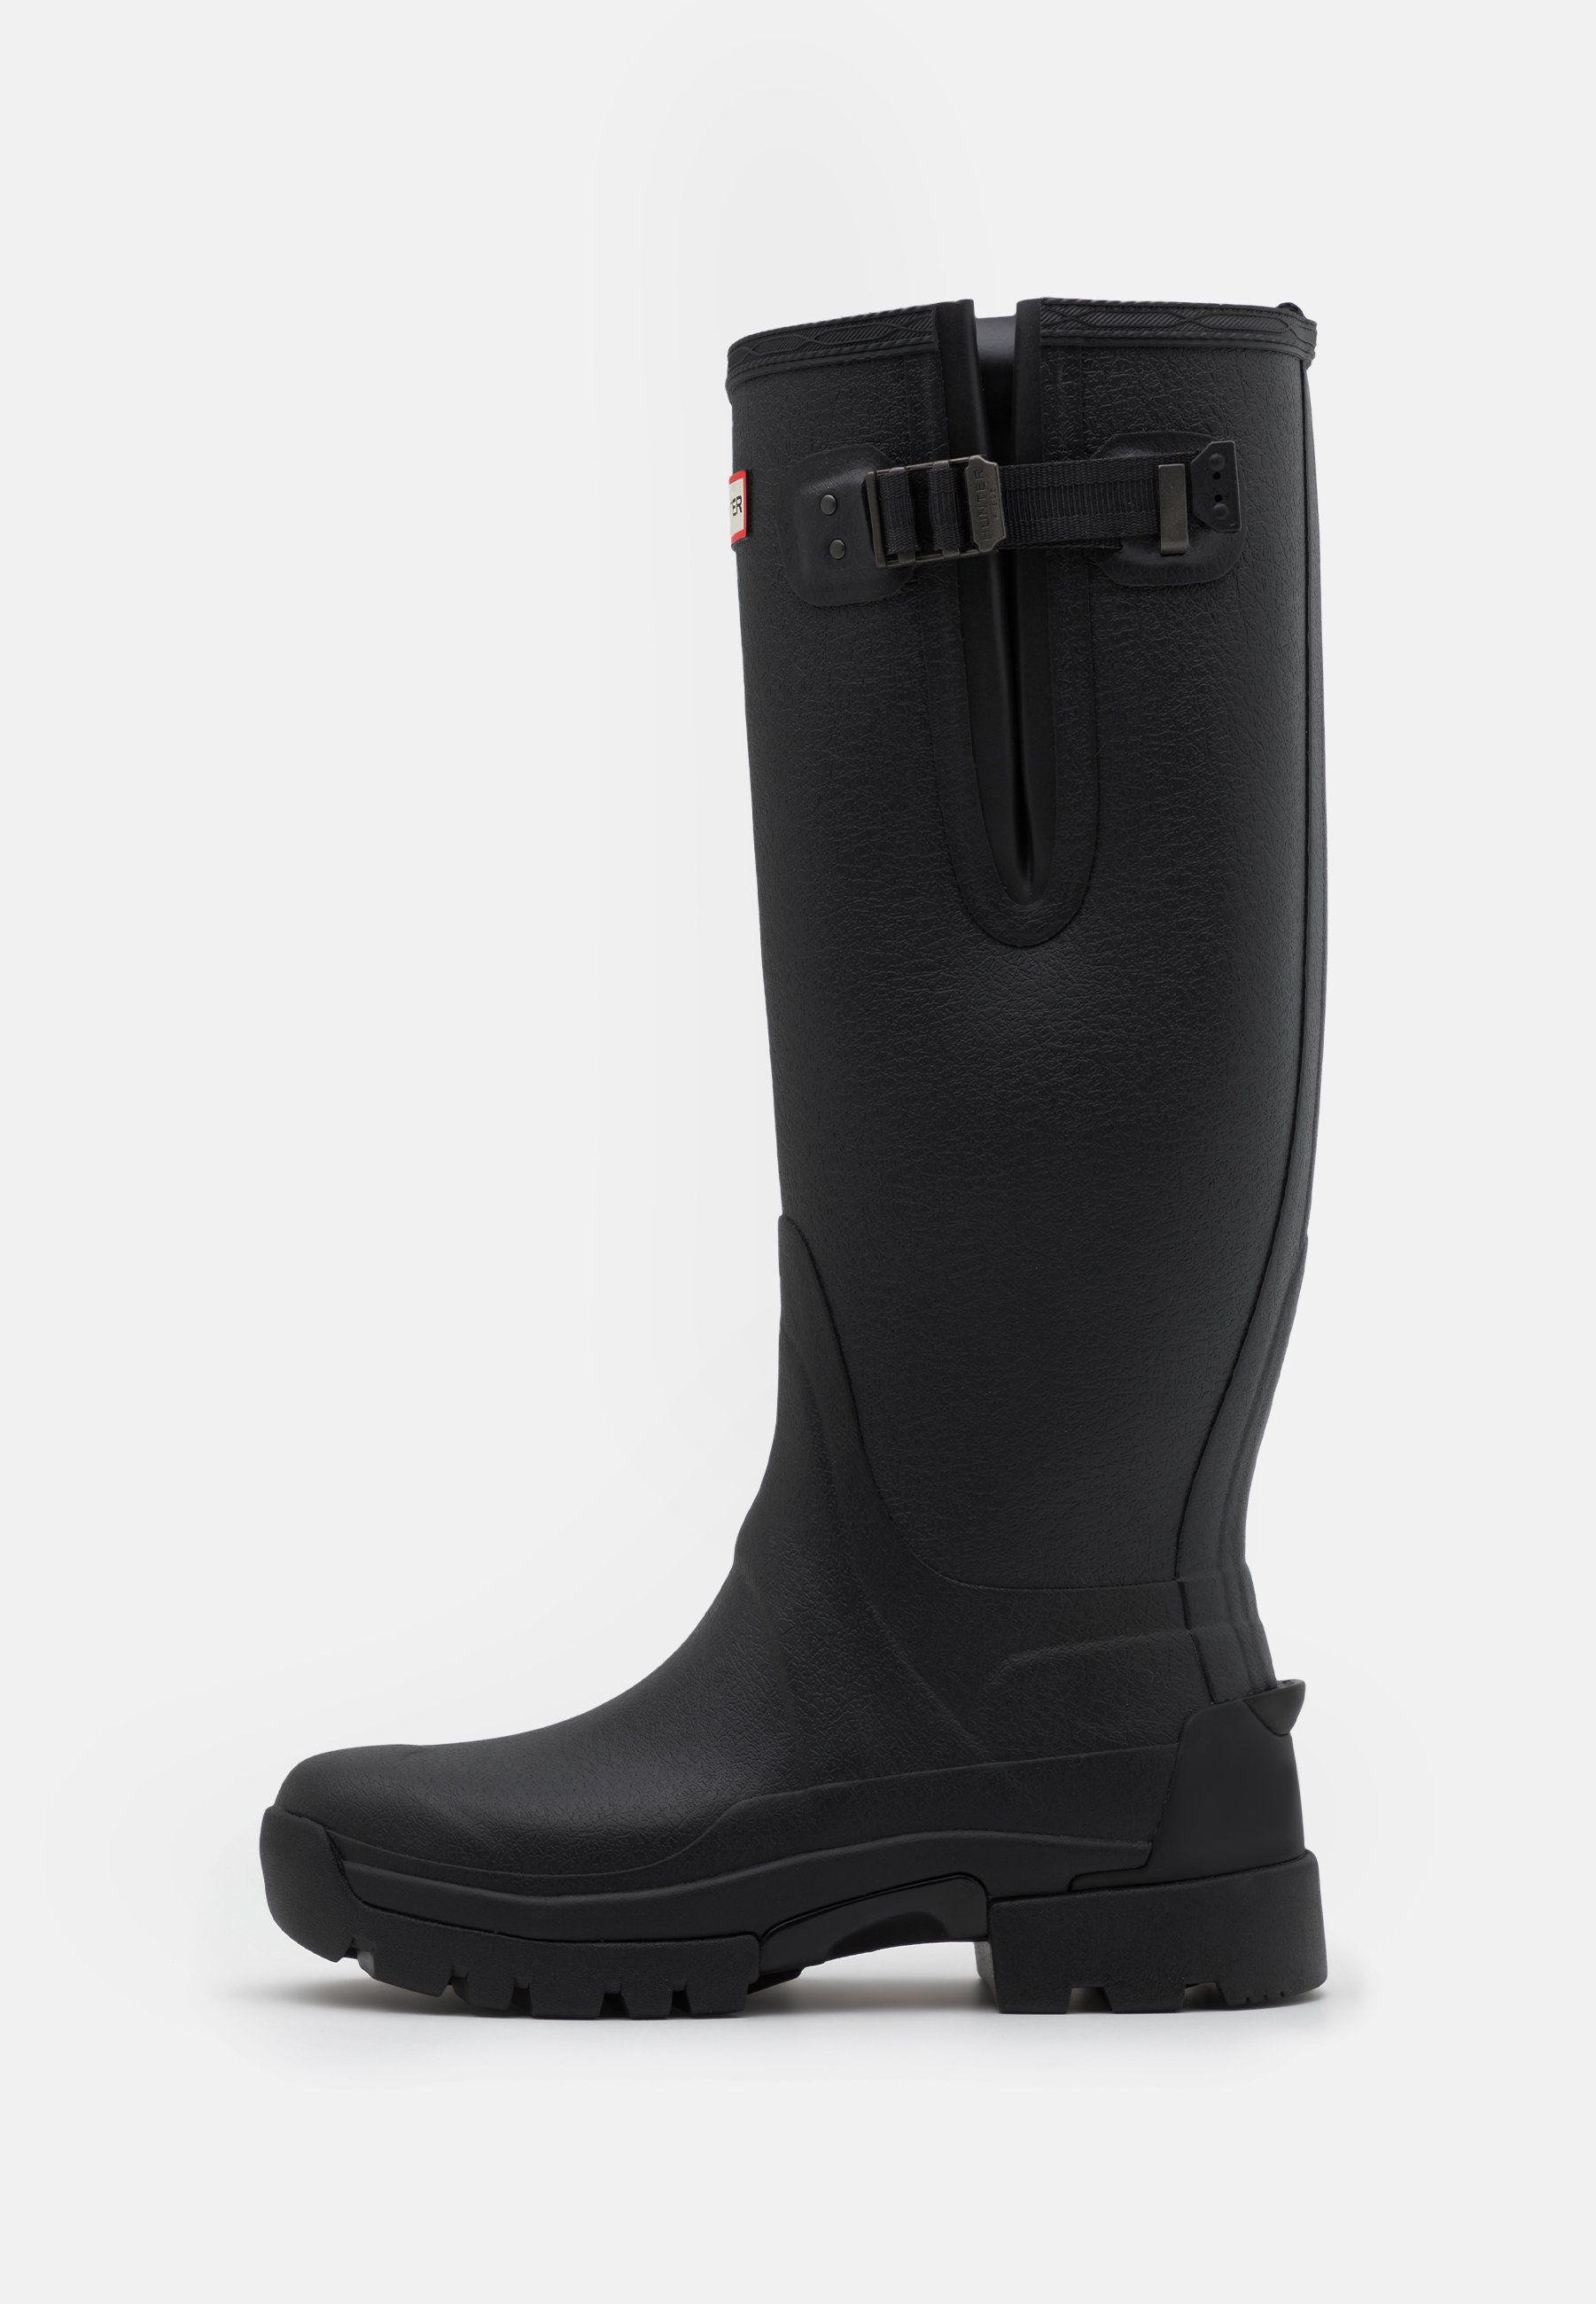 Homme MENS BALMORAL SIDE ADJUSTABLE NEO LINED TECH SOLE BOOT TALL - Bottes en caoutchouc